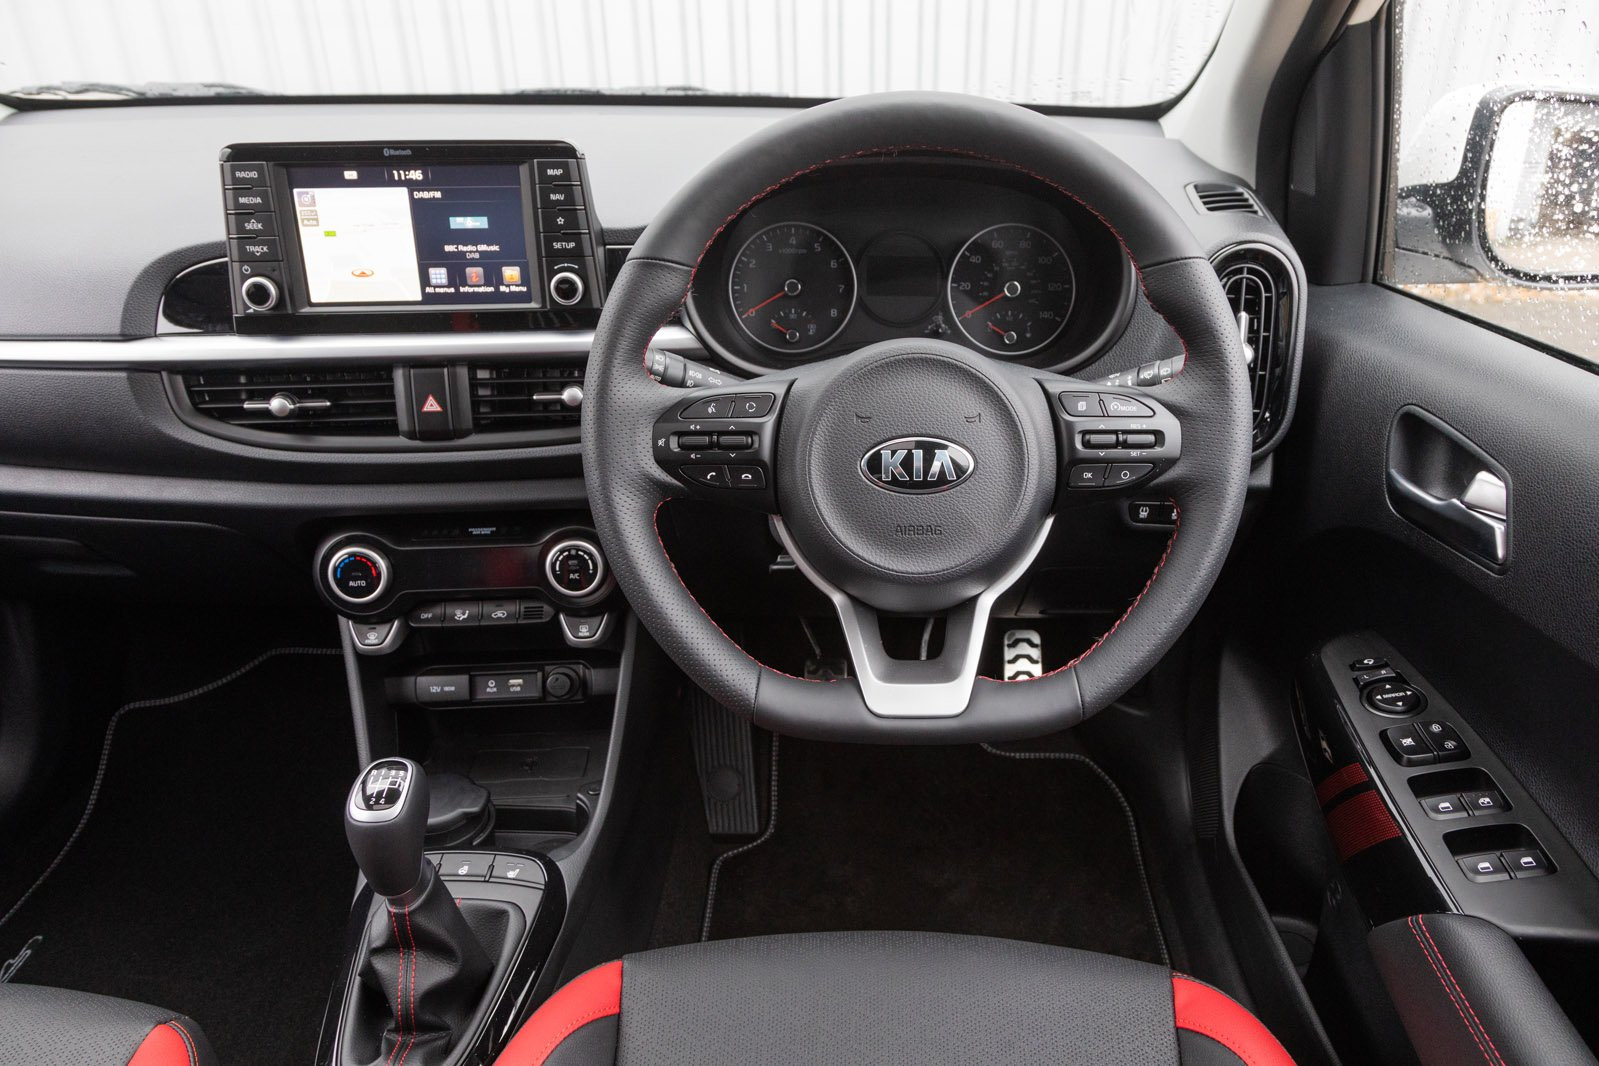 Kia Picanto Interior, Sat Nav, Dashboard | What Car?